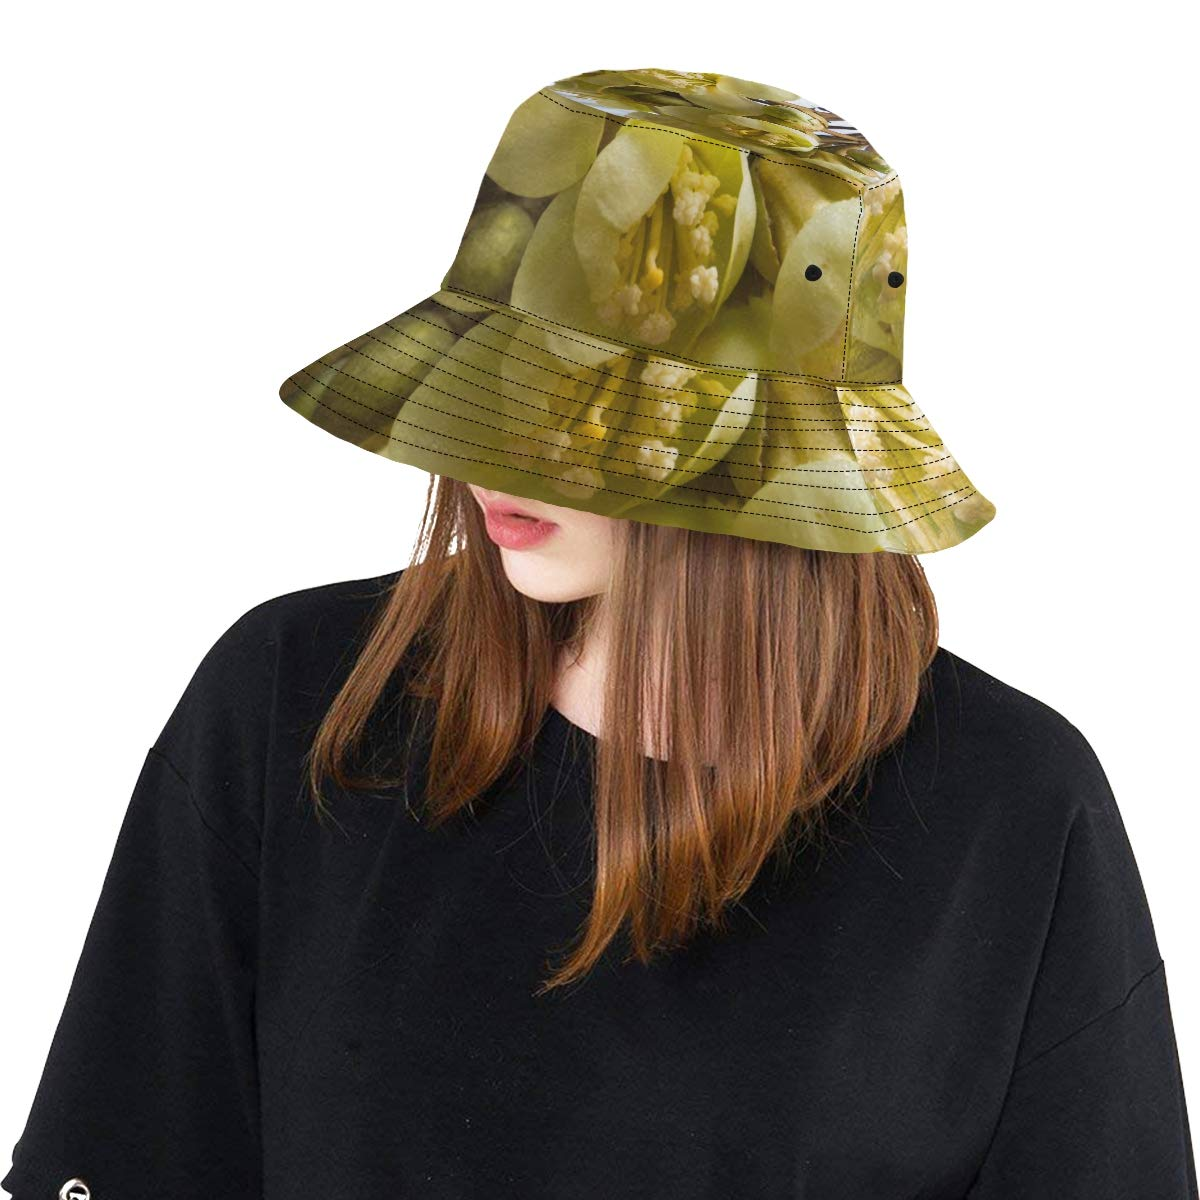 Durian Flower Beautiful Summer Unisex Fishing Sun Top Bucket Hats for Kid Teens Women and Men with Packable Fisherman Cap for Outdoor Baseball Sport Picnic